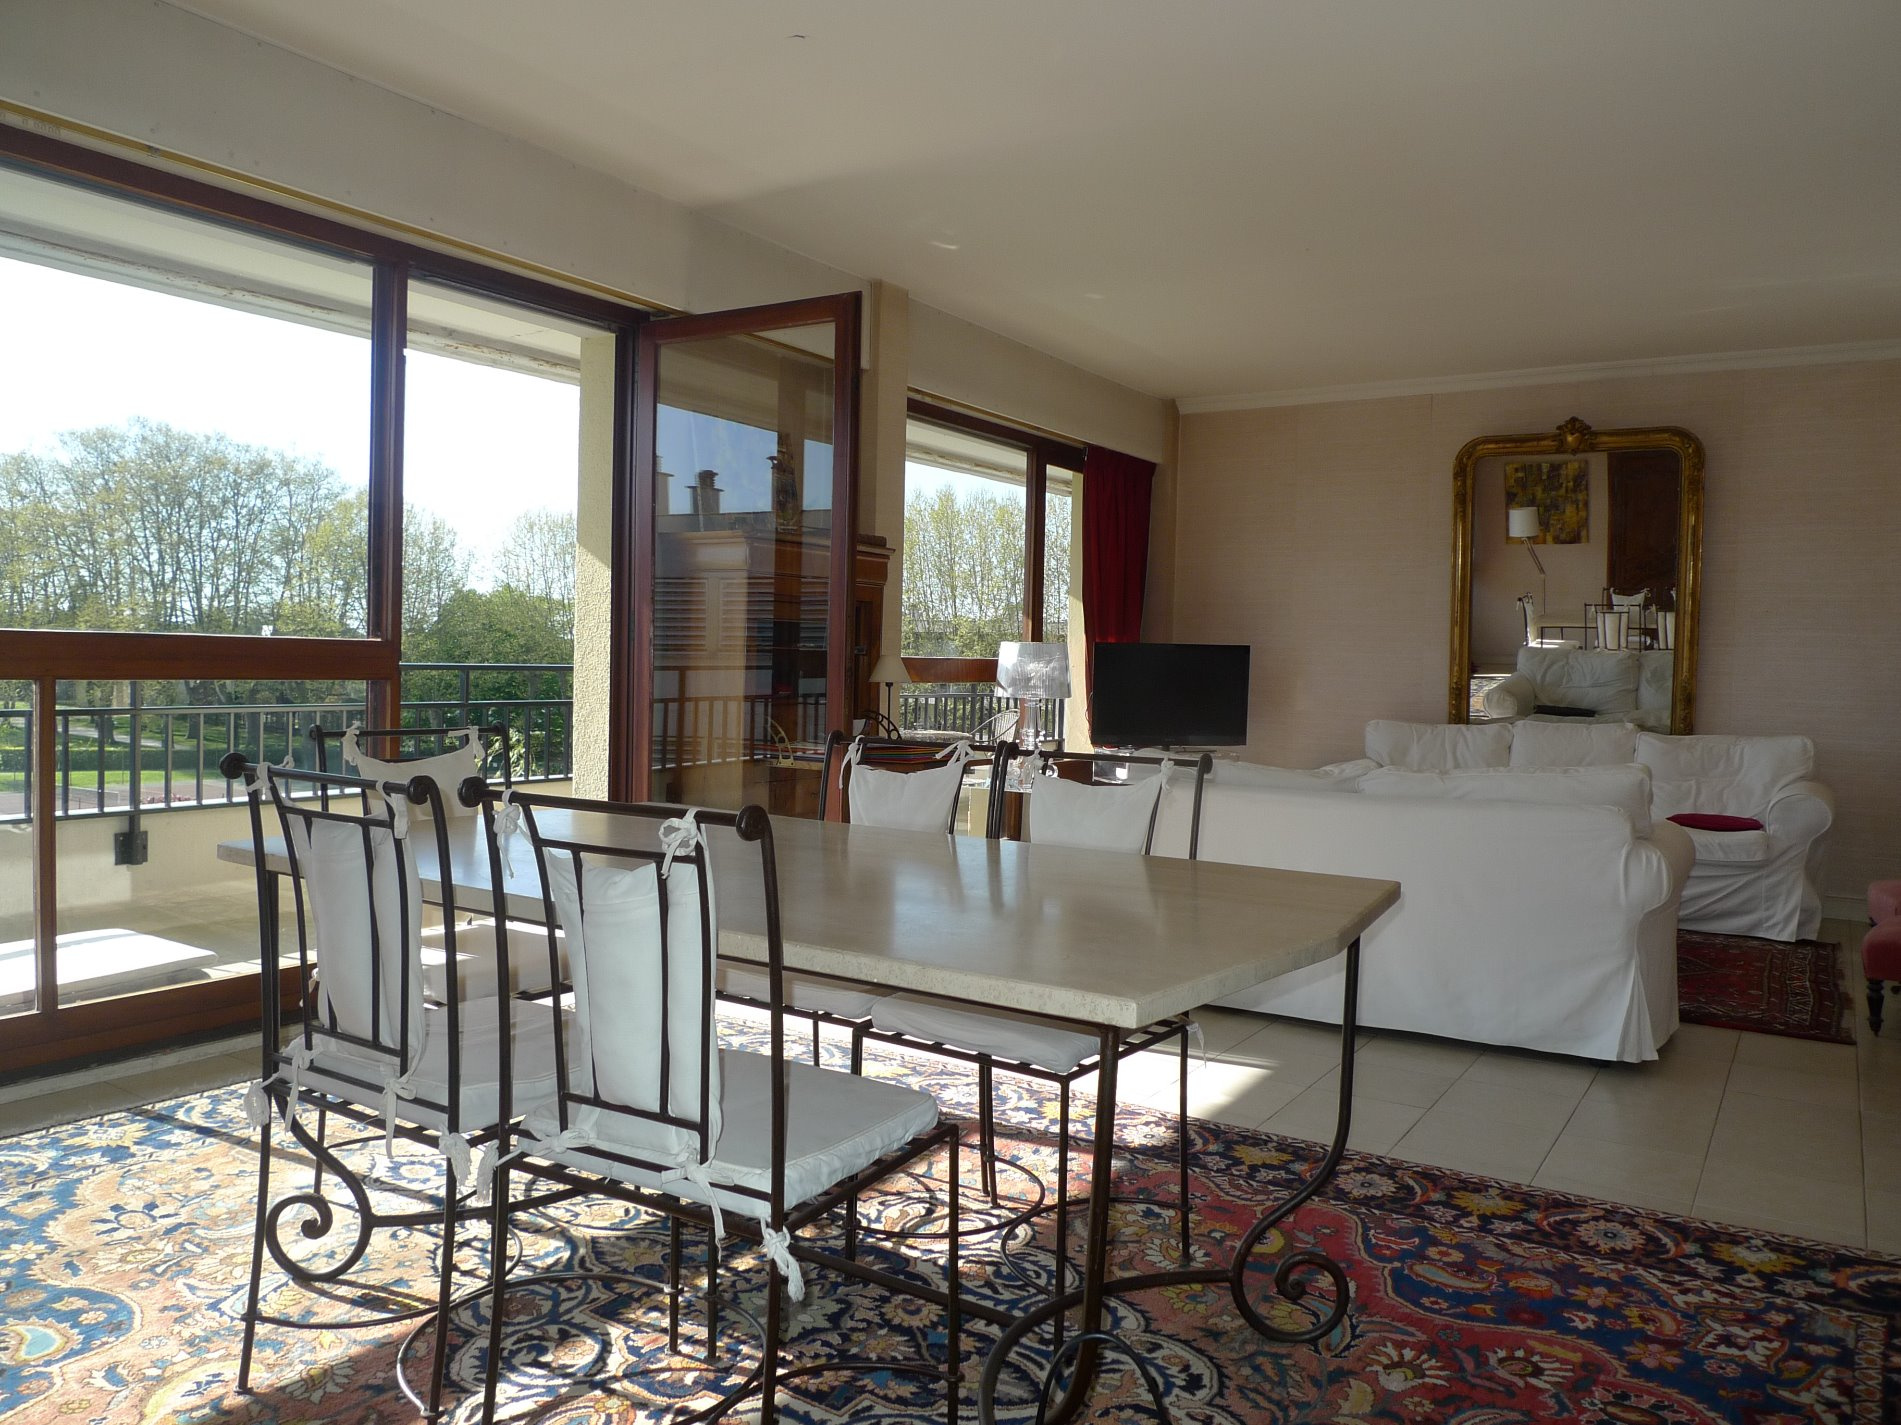 J 39 habite en ville l 39 immobilier bordeaux saint pierre for Immobilier chartrons bordeaux